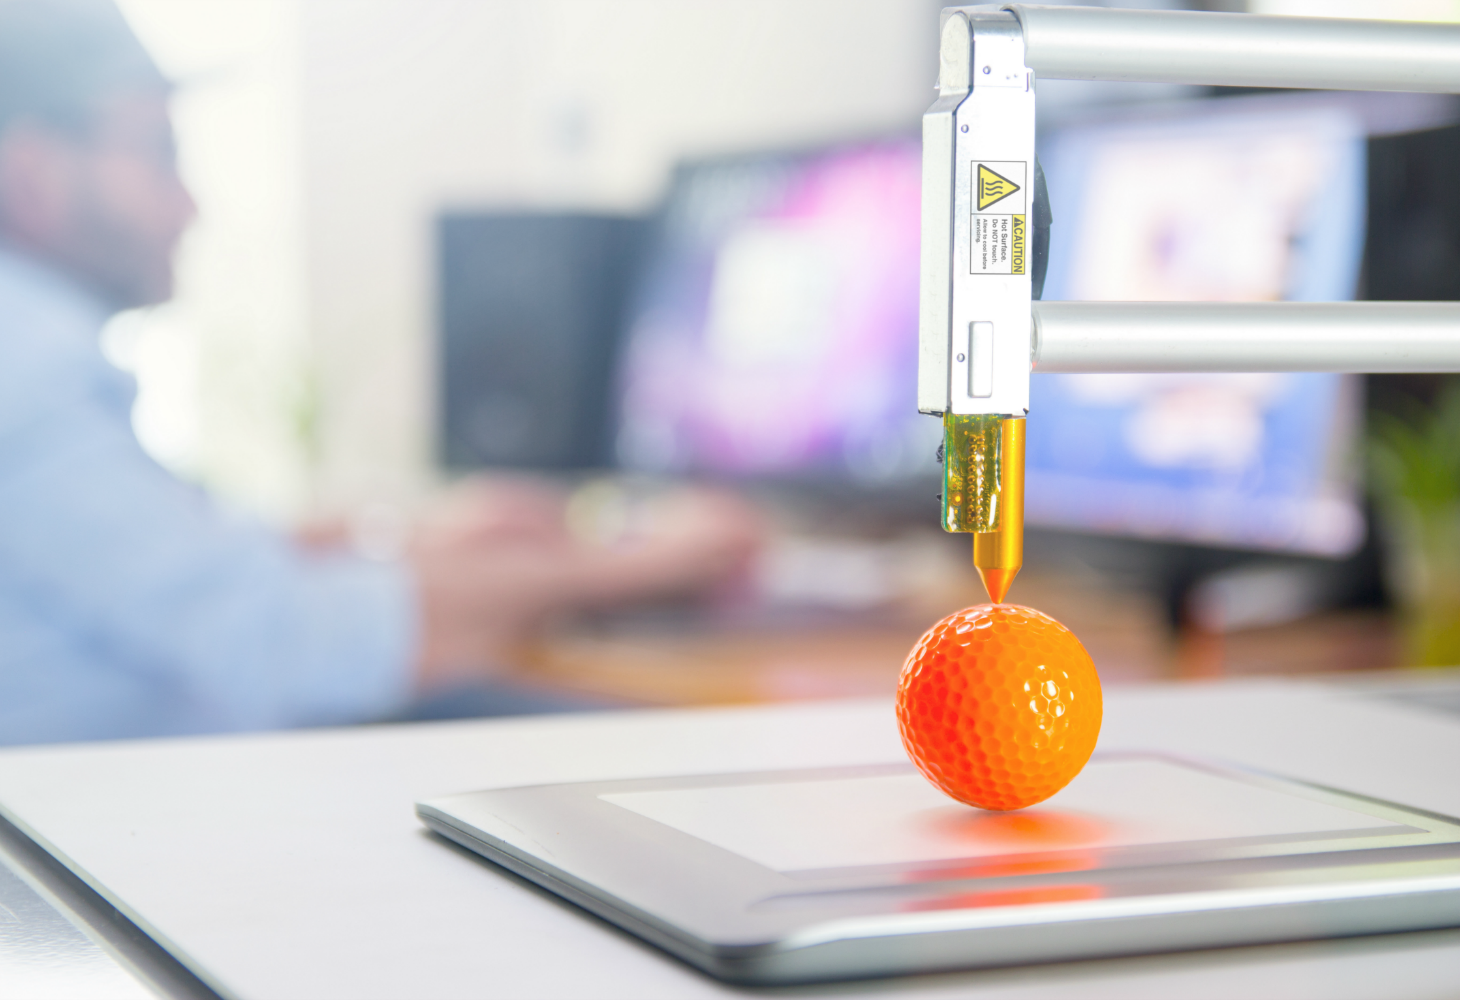 Why Should Enterprise CIOs Care About 3D Printing?